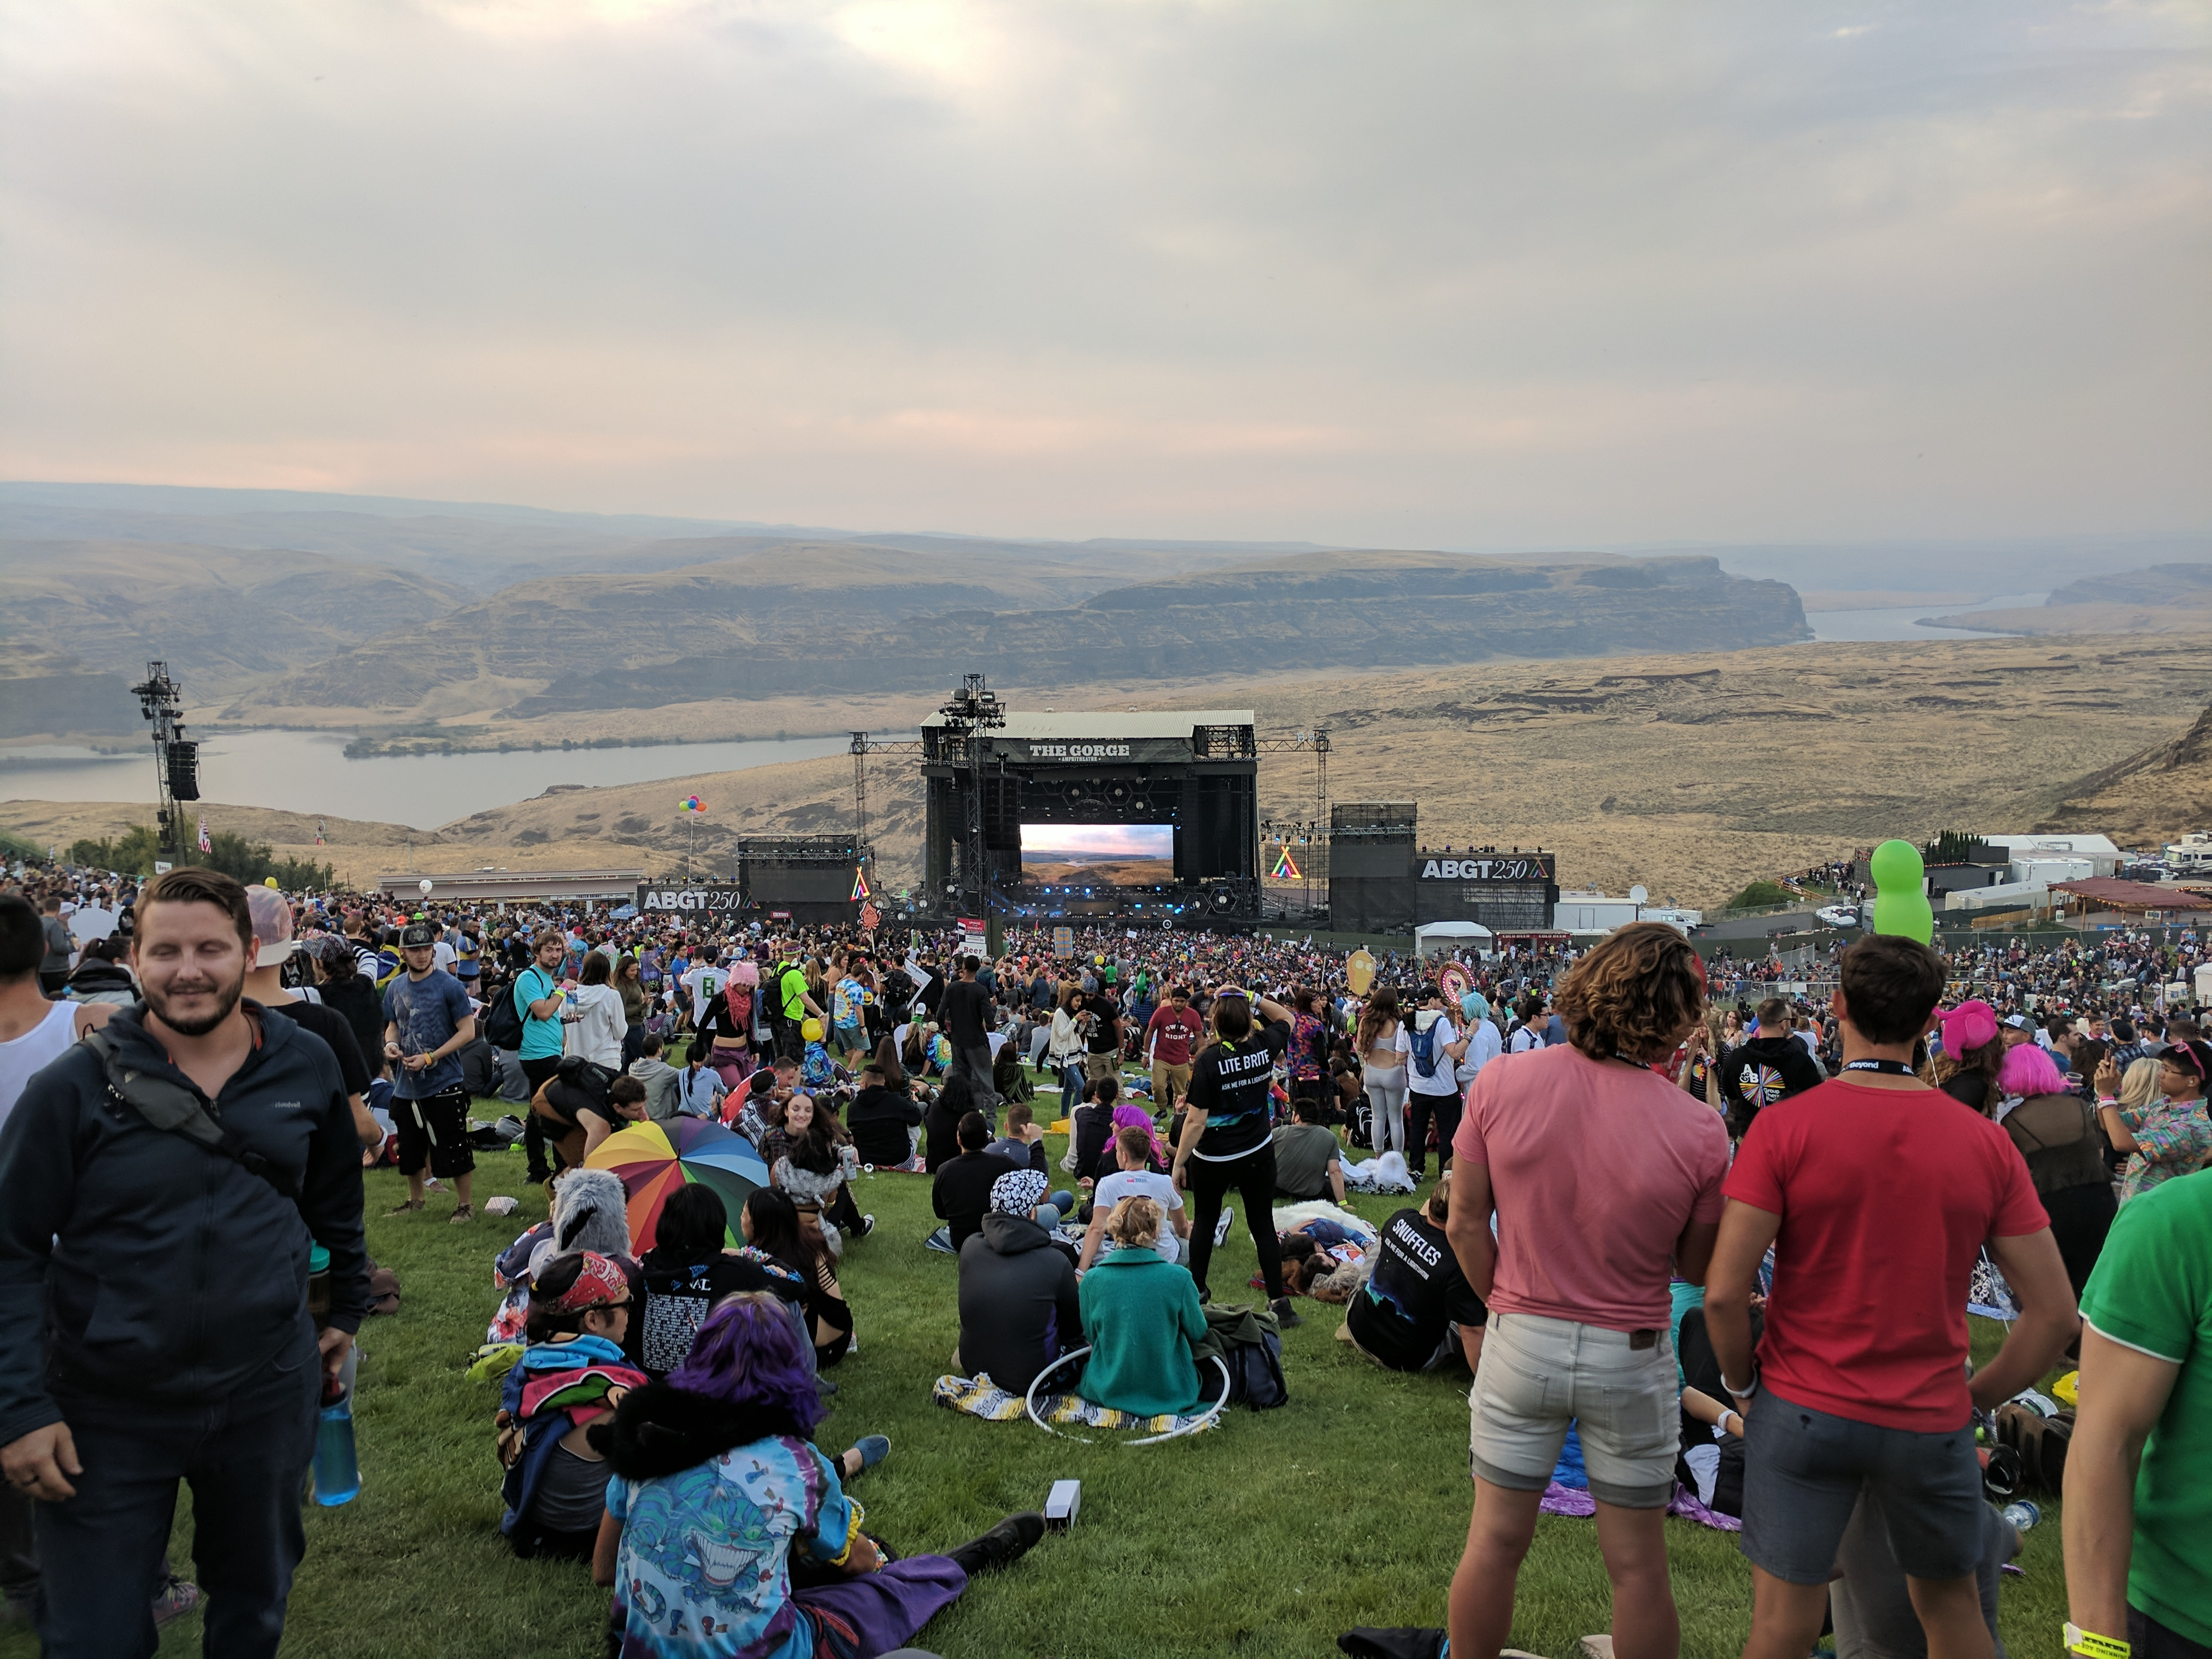 The Gorge Amphitheatre for ABGT250